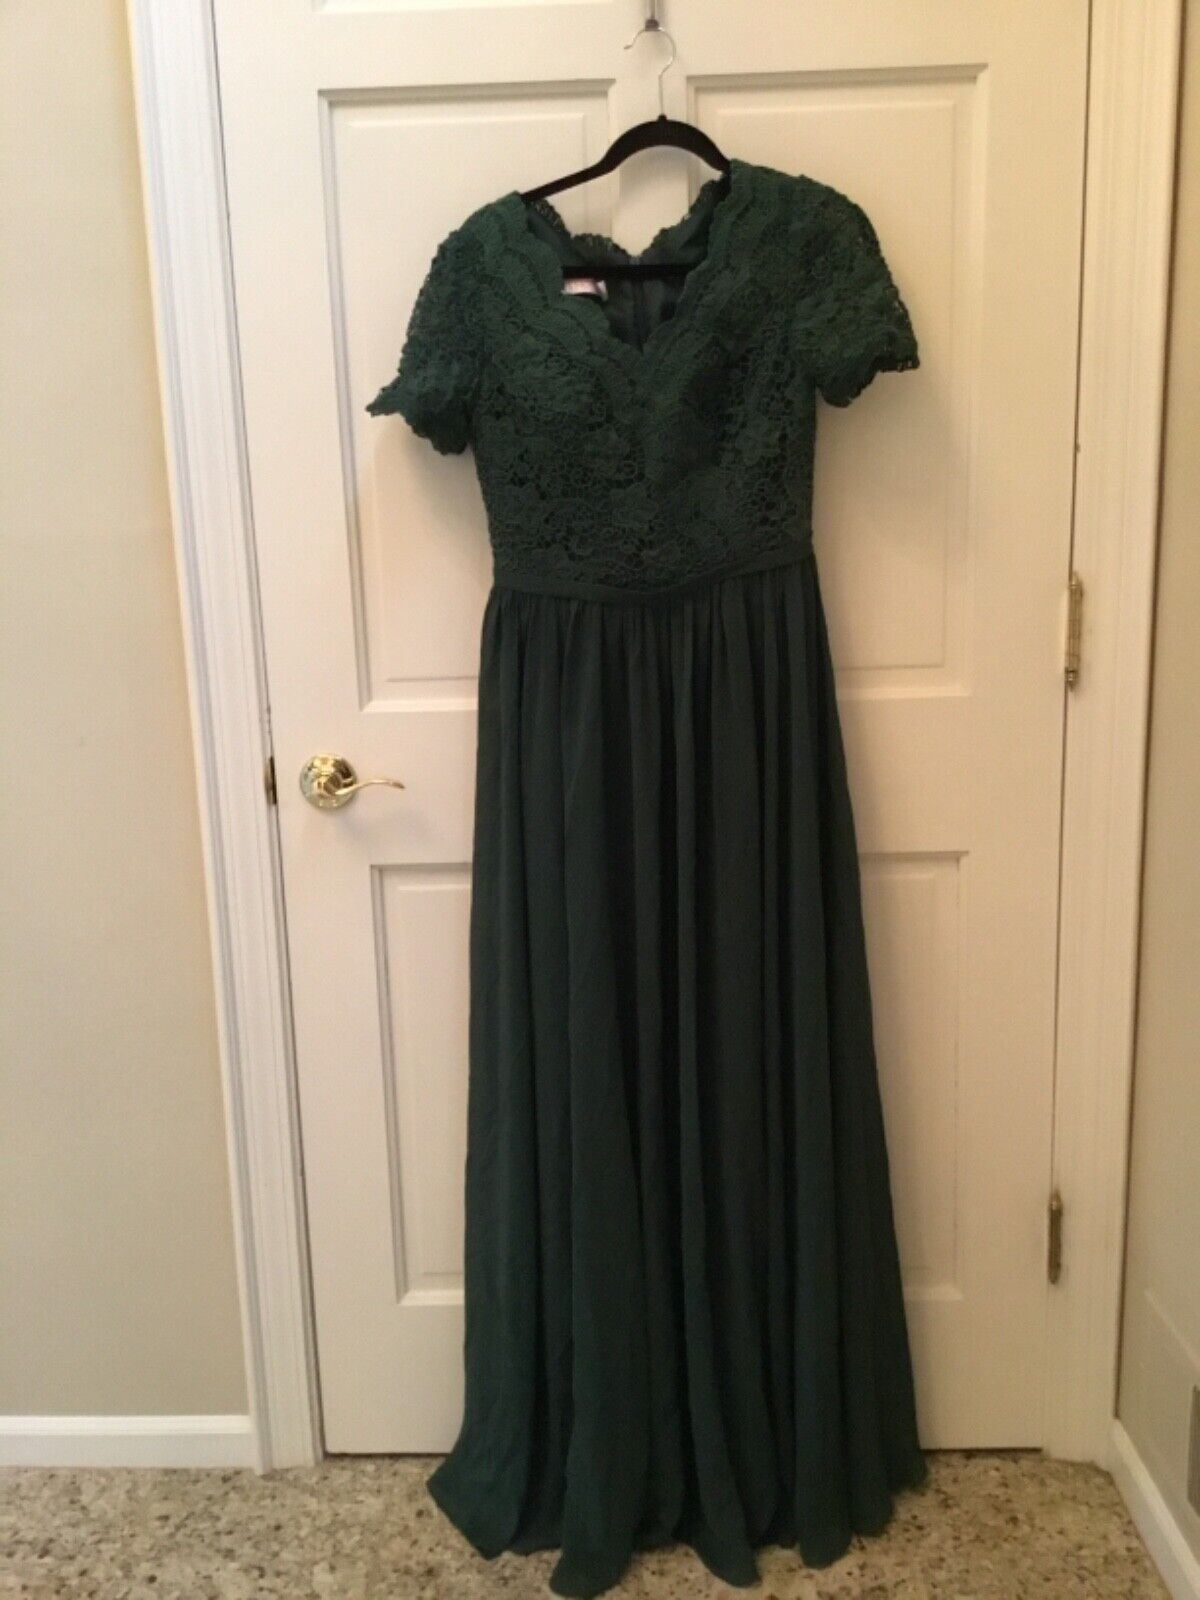 NWT! JJs House Formal Cocktail / Wedding / Mother of the Bride Dress - Size 10